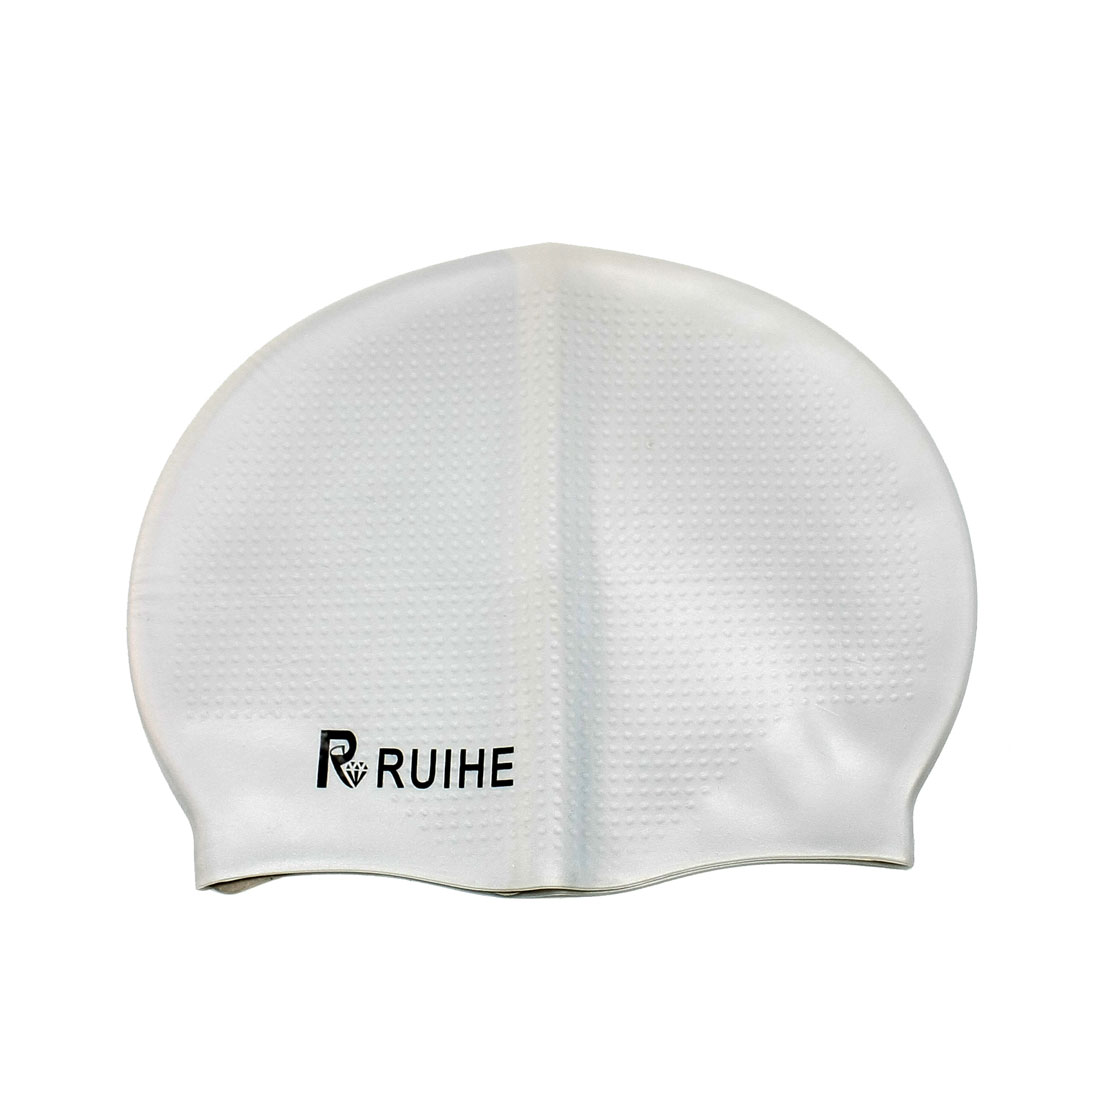 Nonslip Soft Silicone Swimming Cap for Adult Divers Swimmers